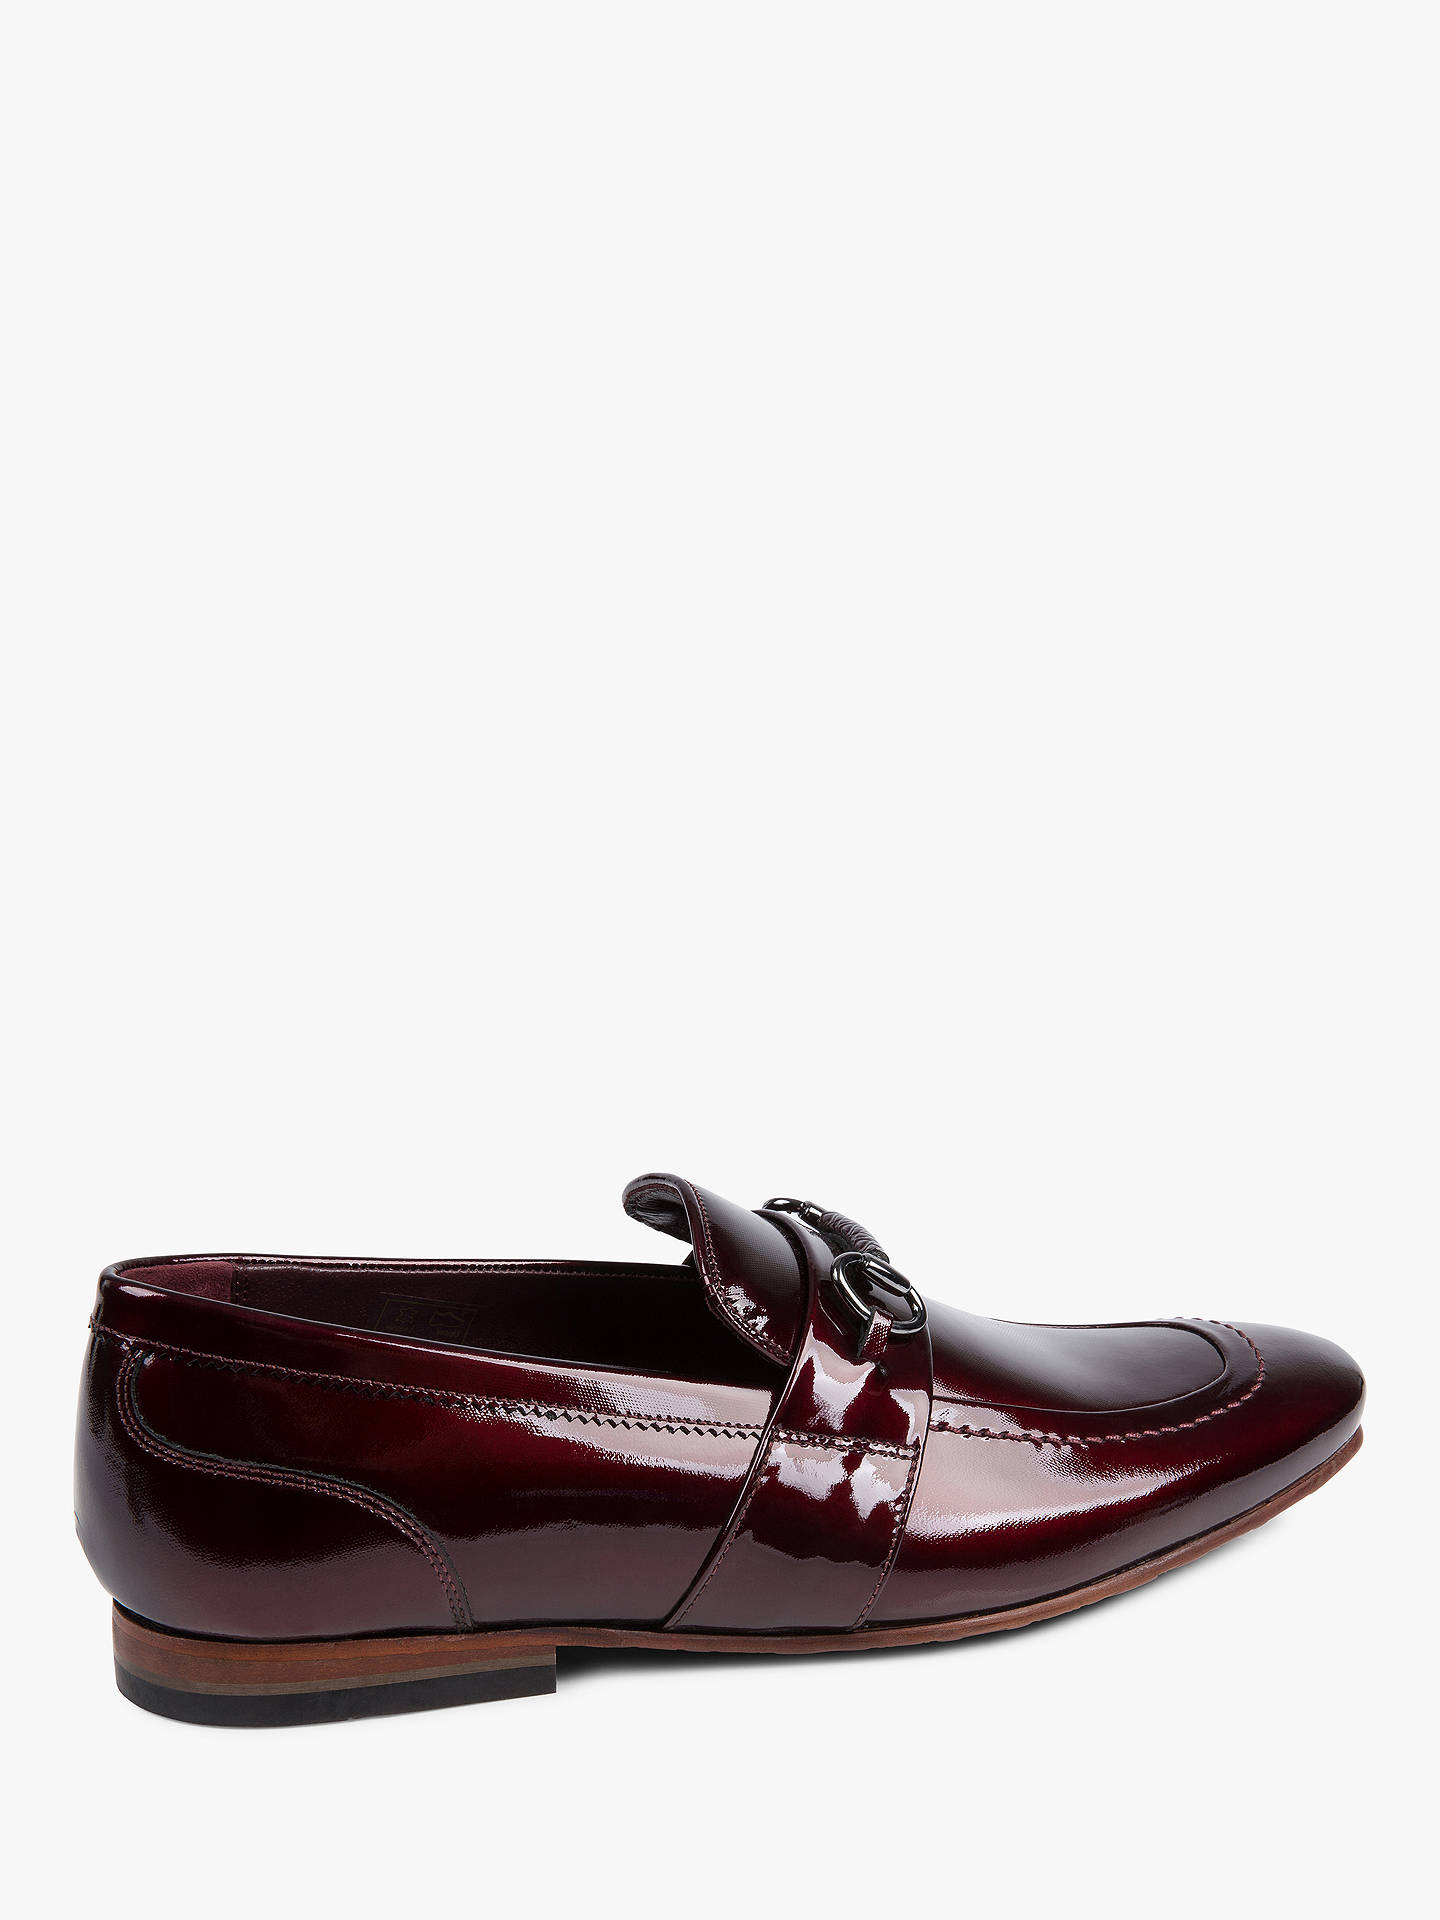 213a212e82996 ... Buy Ted Baker Daiser Loafers